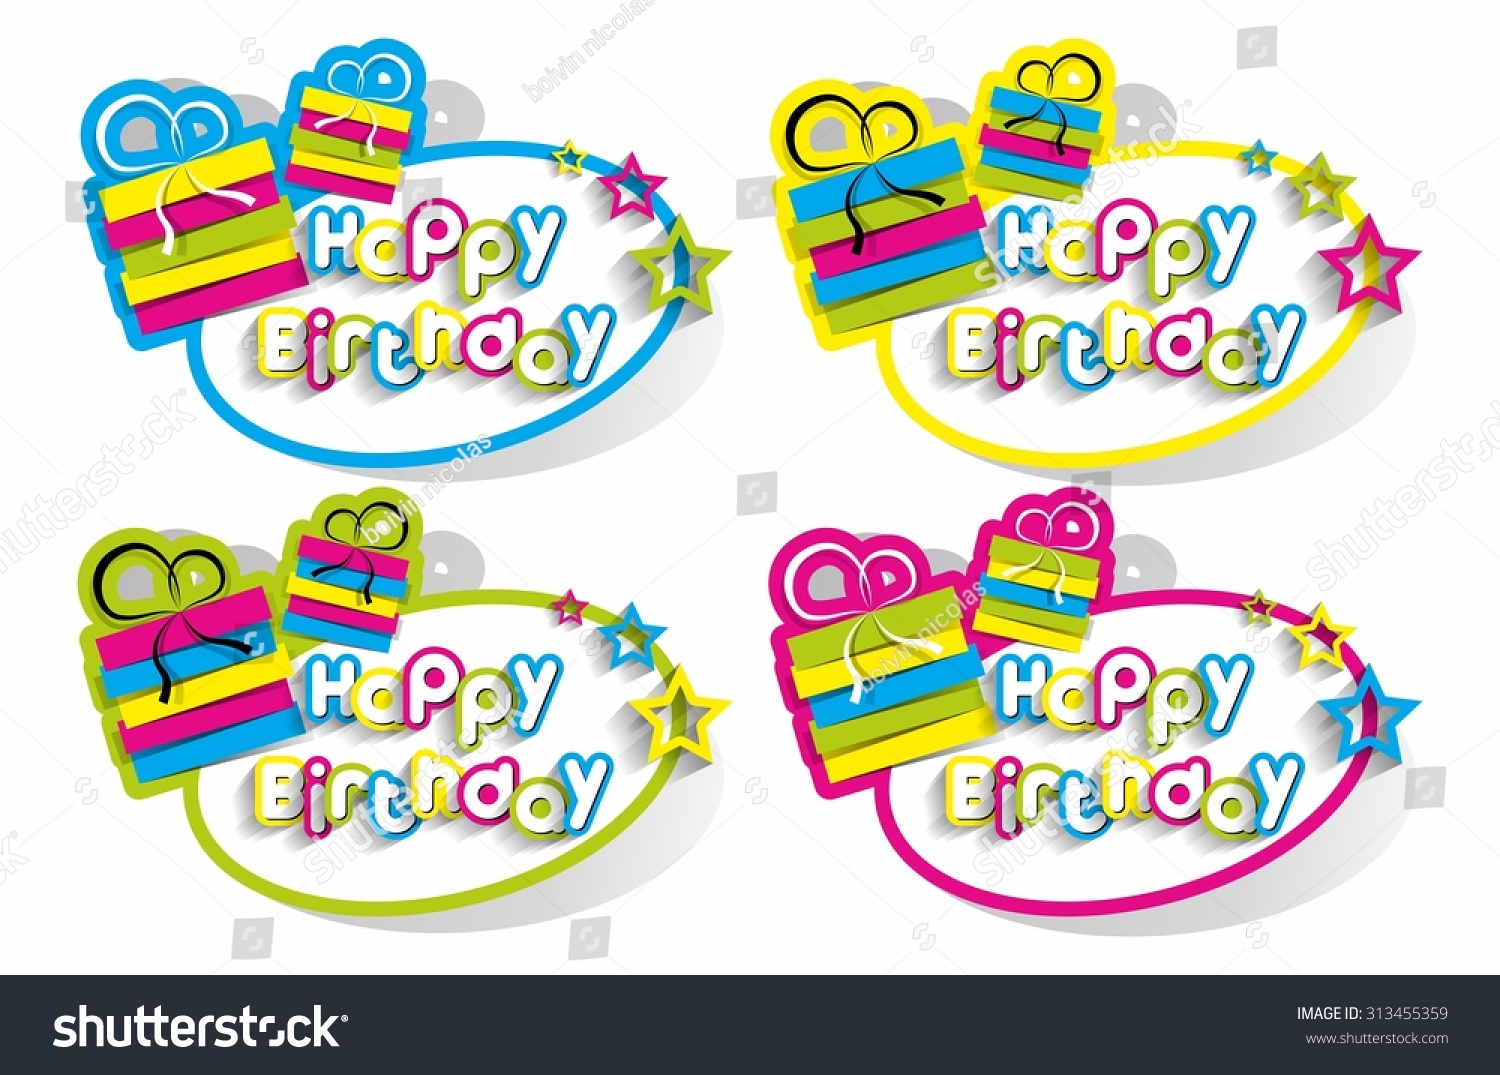 Happy birthday stickers on background vector illustration